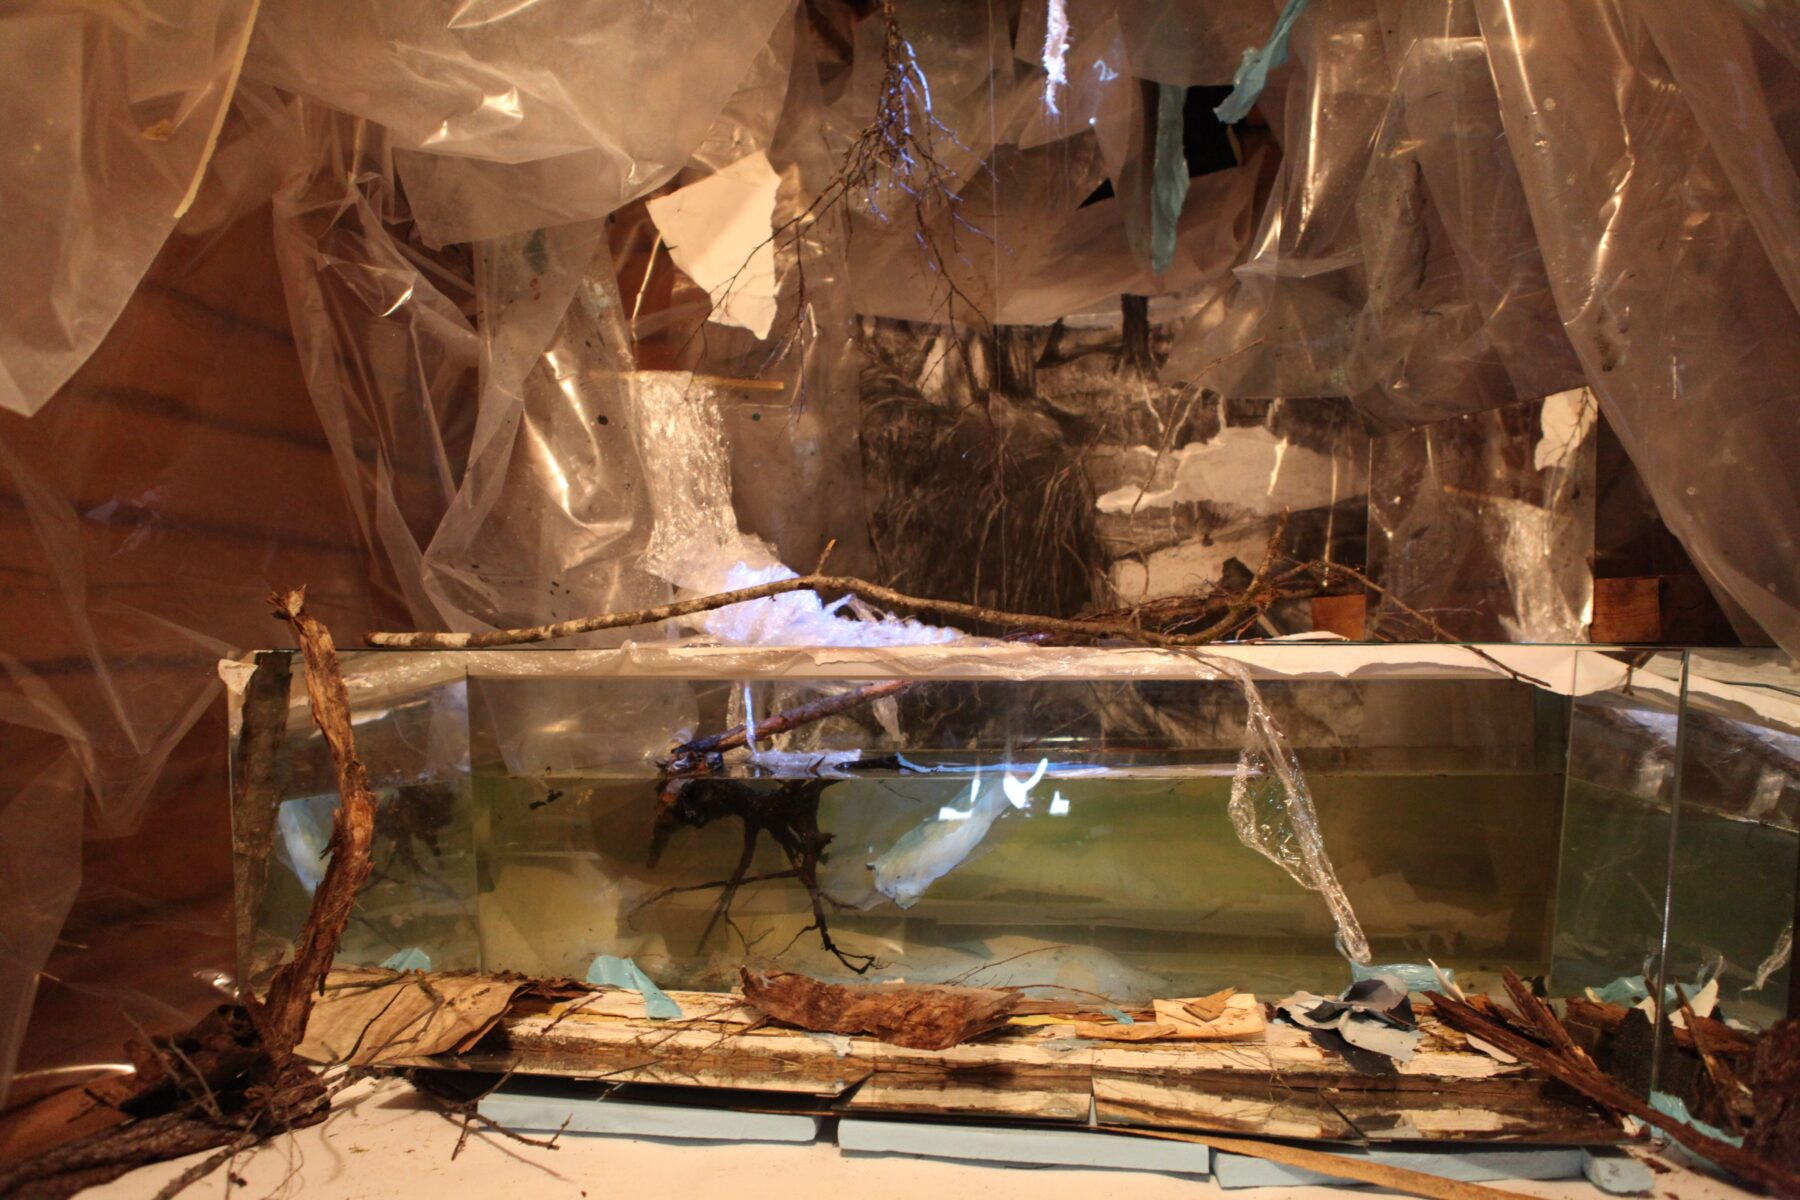 Petrochemical Bliss: 5 Stages of decay, was a site-specific installation built for the exhibition Financial Times, at Mustarinda, Finland in 2013, Jane Hughes